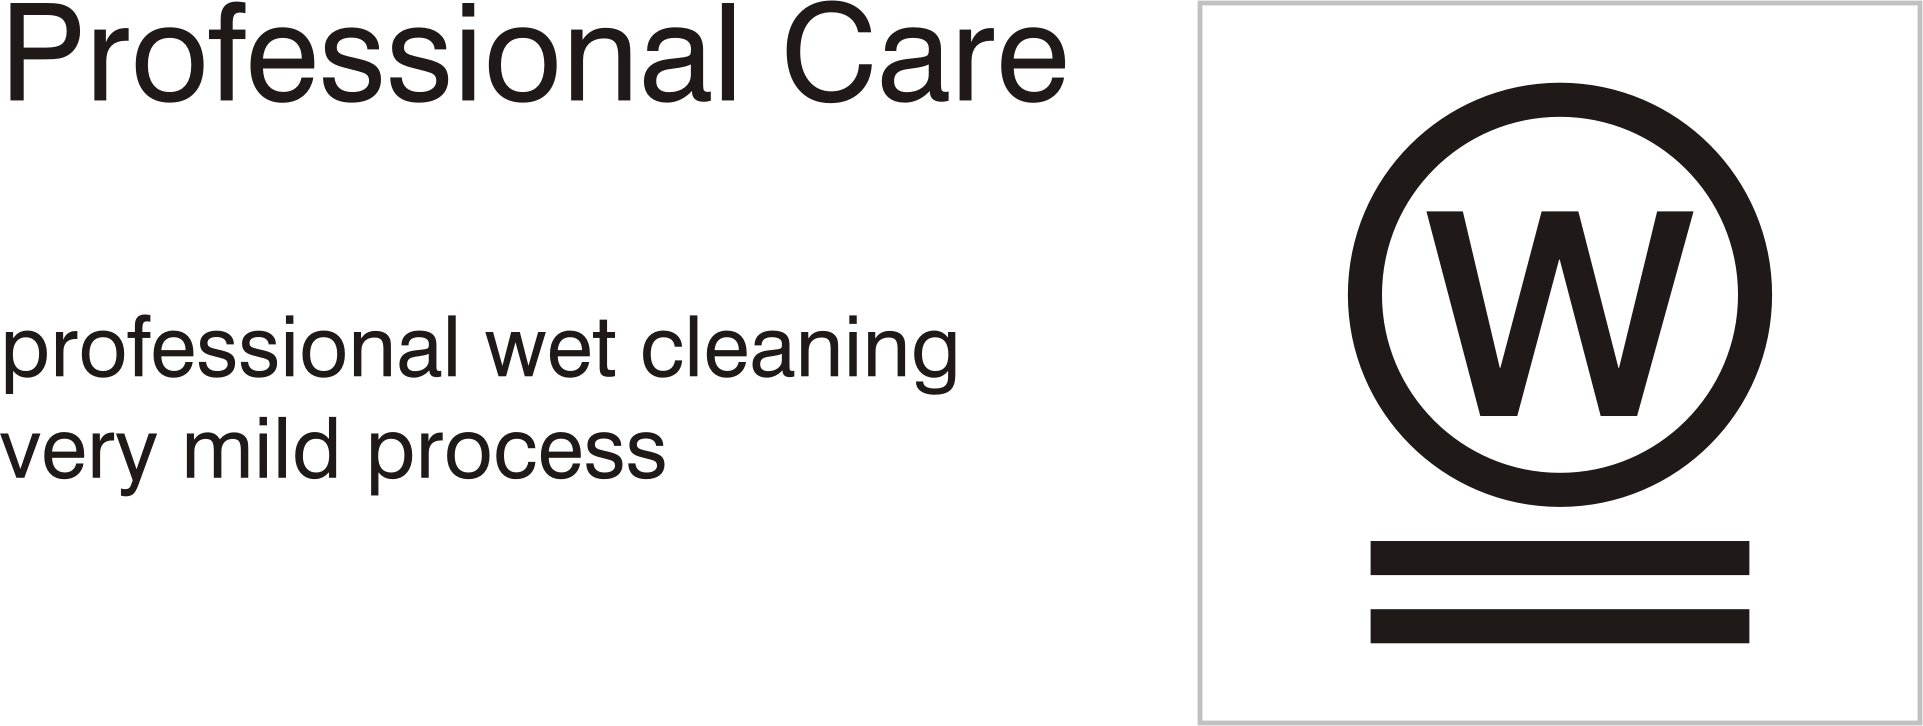 Care symbols, professional care: wet clean - very mild process by Vanja